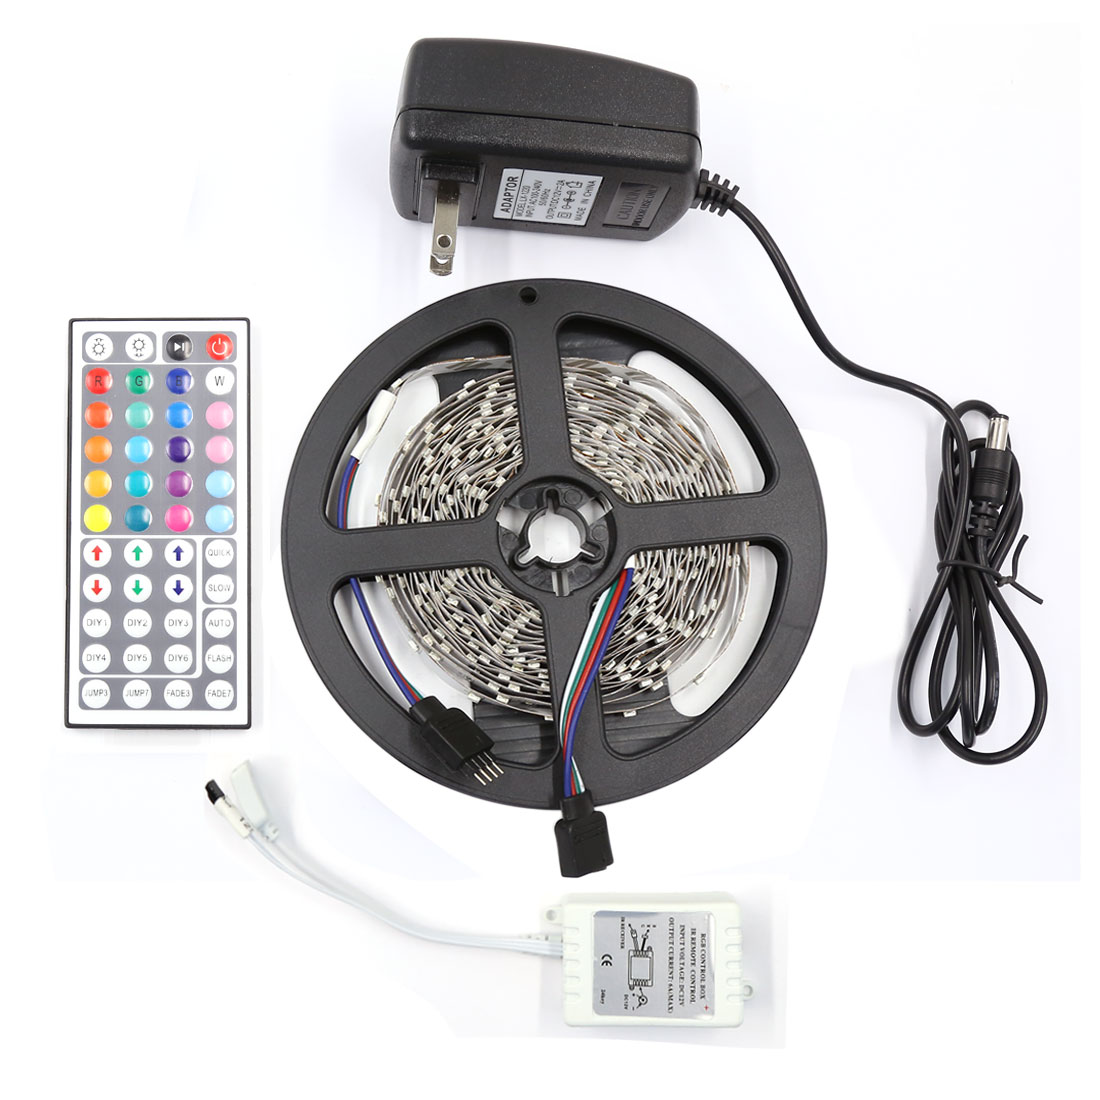 5M RGB 3528 SMD 300 LED Non-Waterproof Strip Light 44 Key Remote AC100-240V US Plug